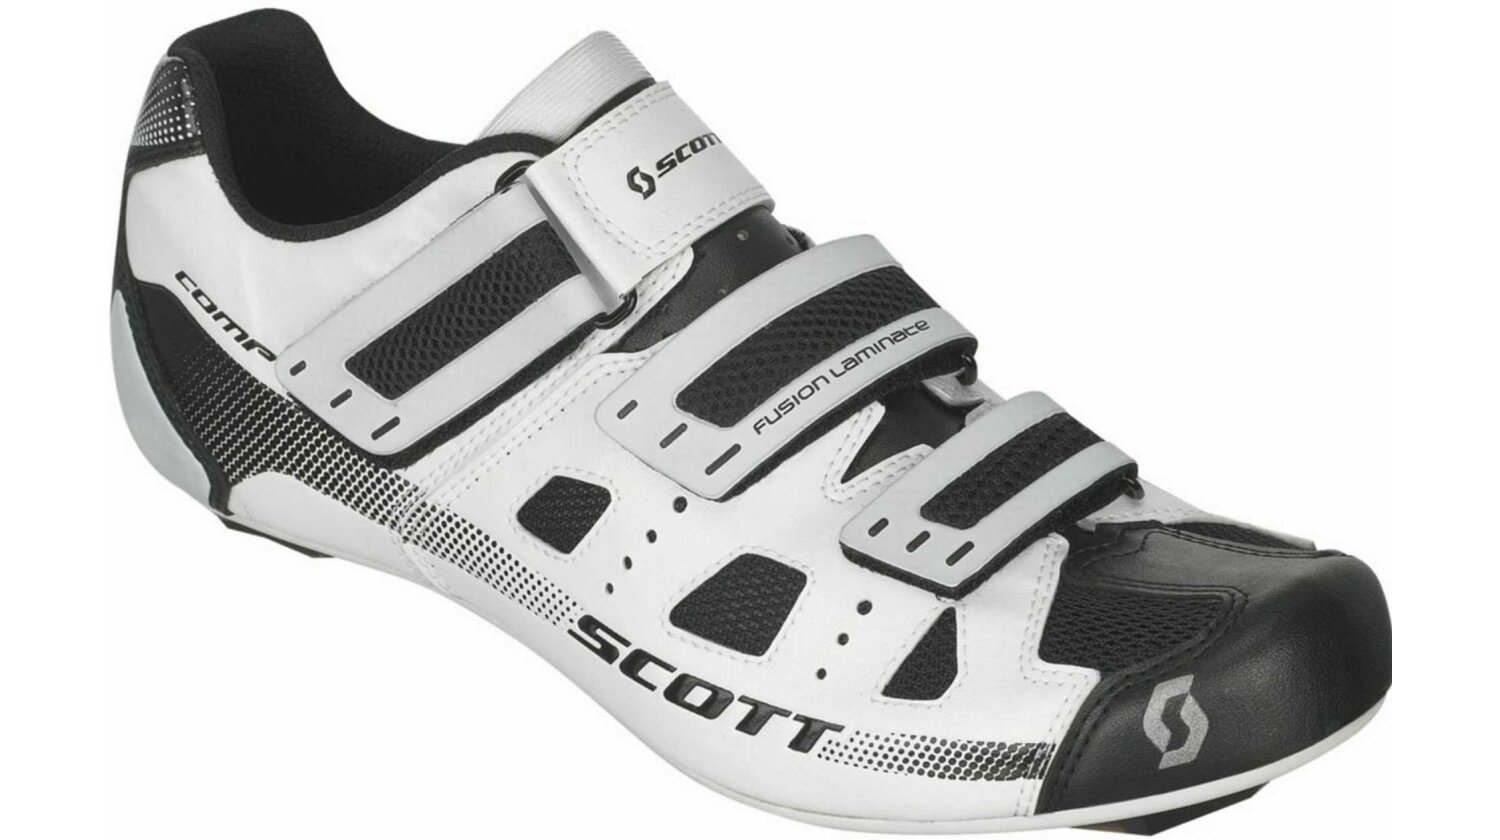 Scott Road Comp Schuh white/black 43